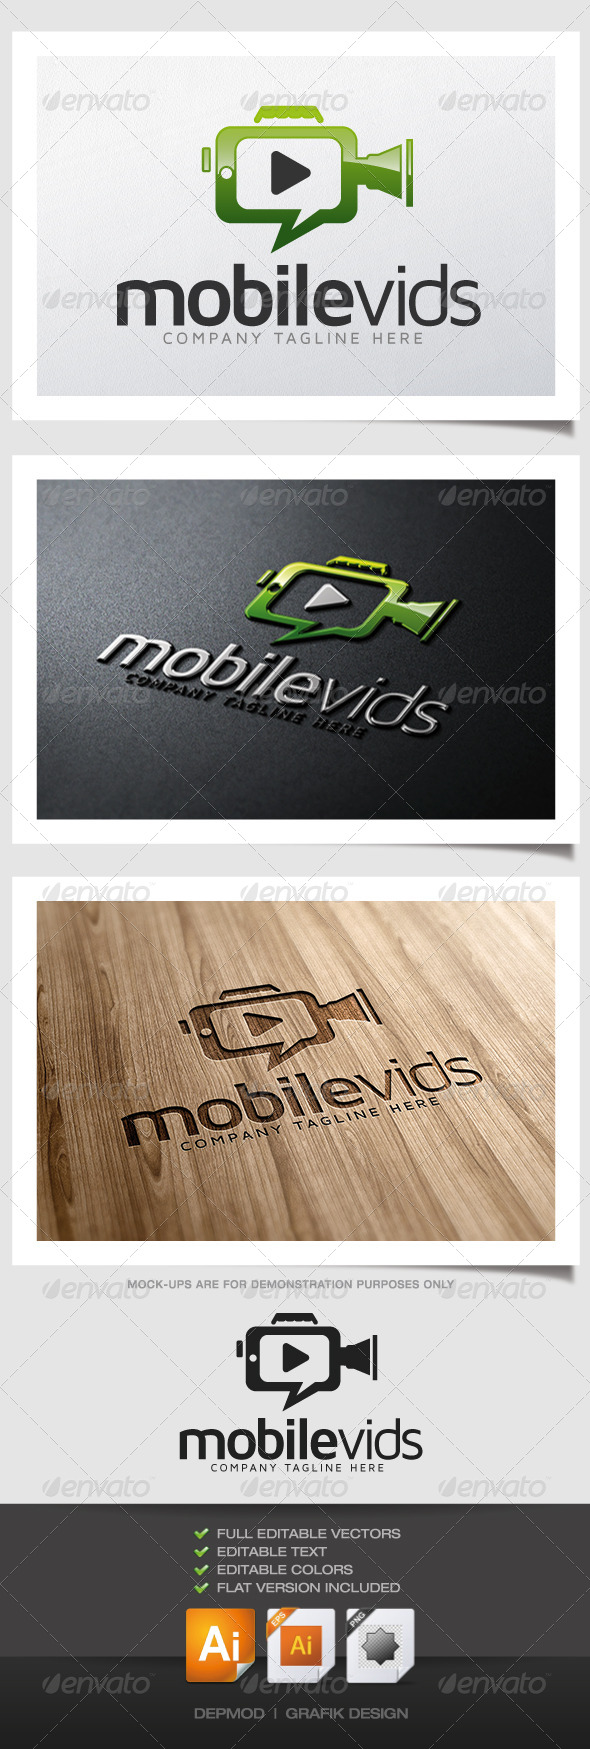 GraphicRiver Mobile Vids 6183999